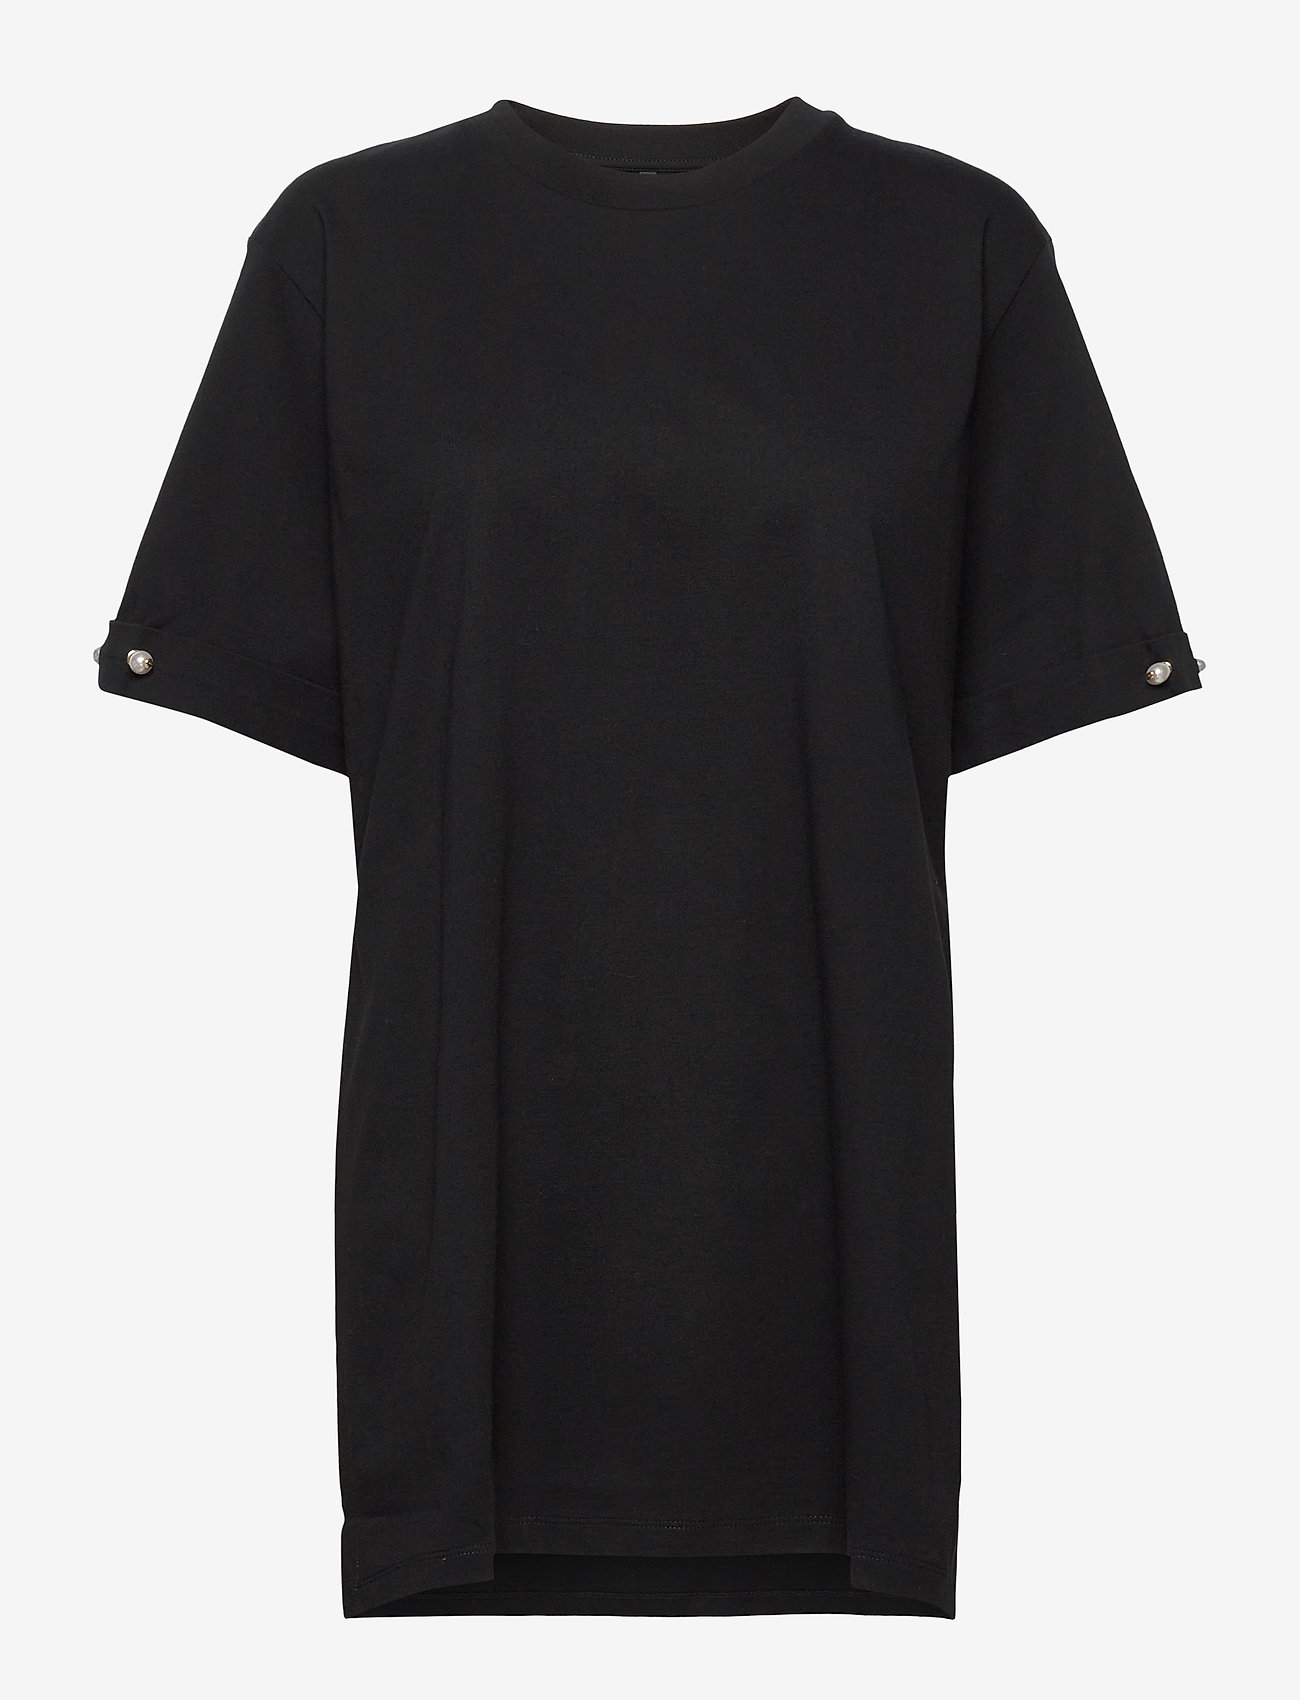 Mother of Pearl - MINTIE OVERSIZED T-SHIRT WITH PEARL BAR - t-shirts - black - 0